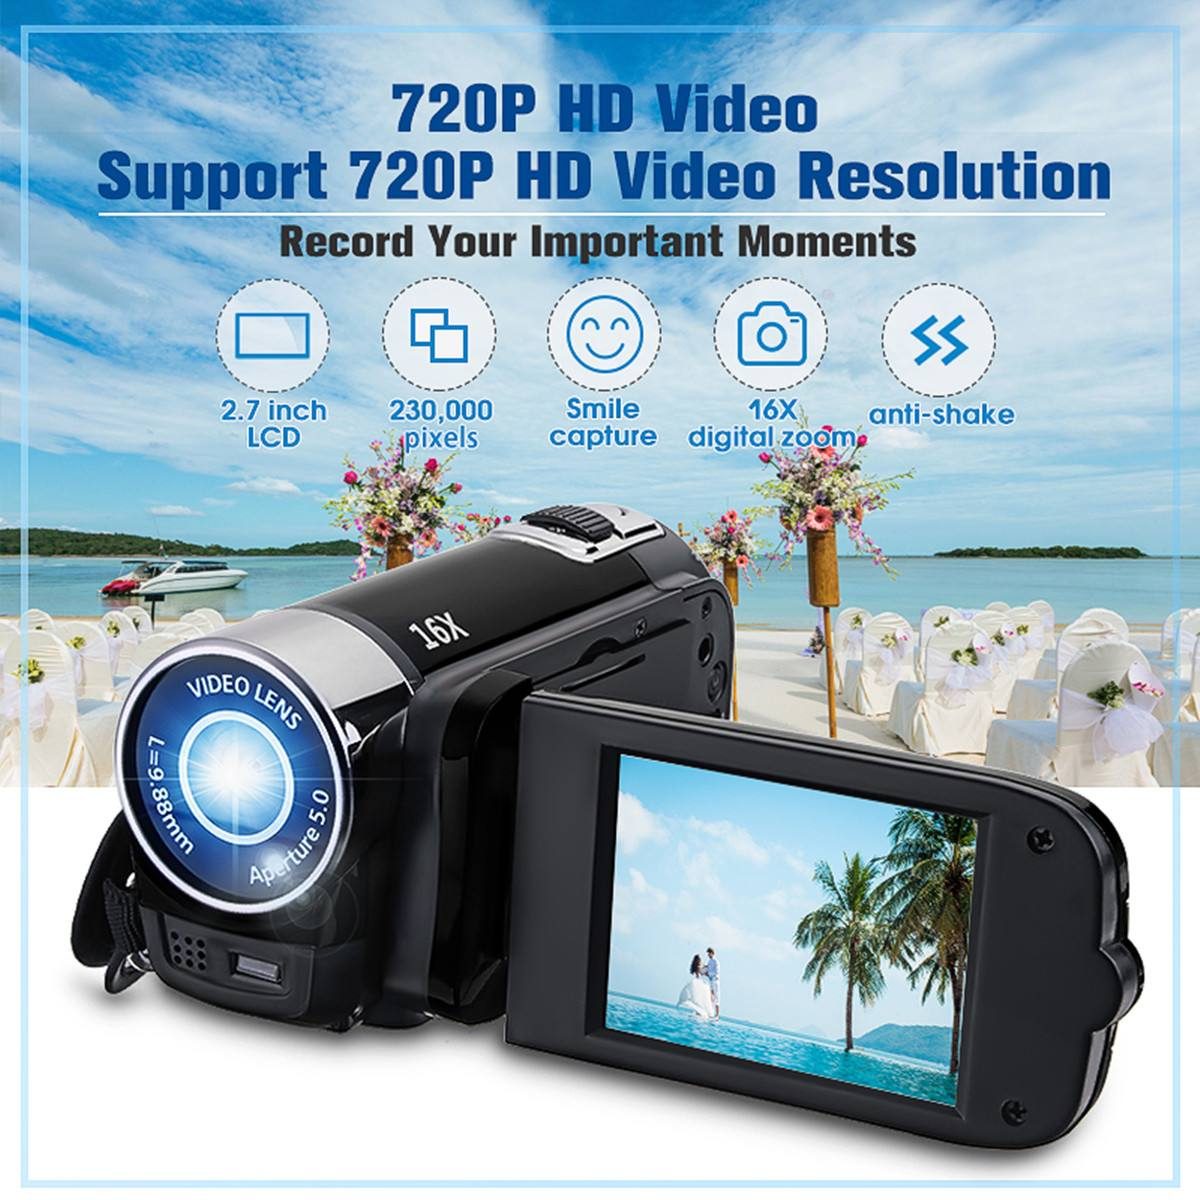 1080P HD Digital Camera Portable Videocamcoder Videocam DV for Home Use Travel Video Camcoder 270 Degrees Rotatable Screen